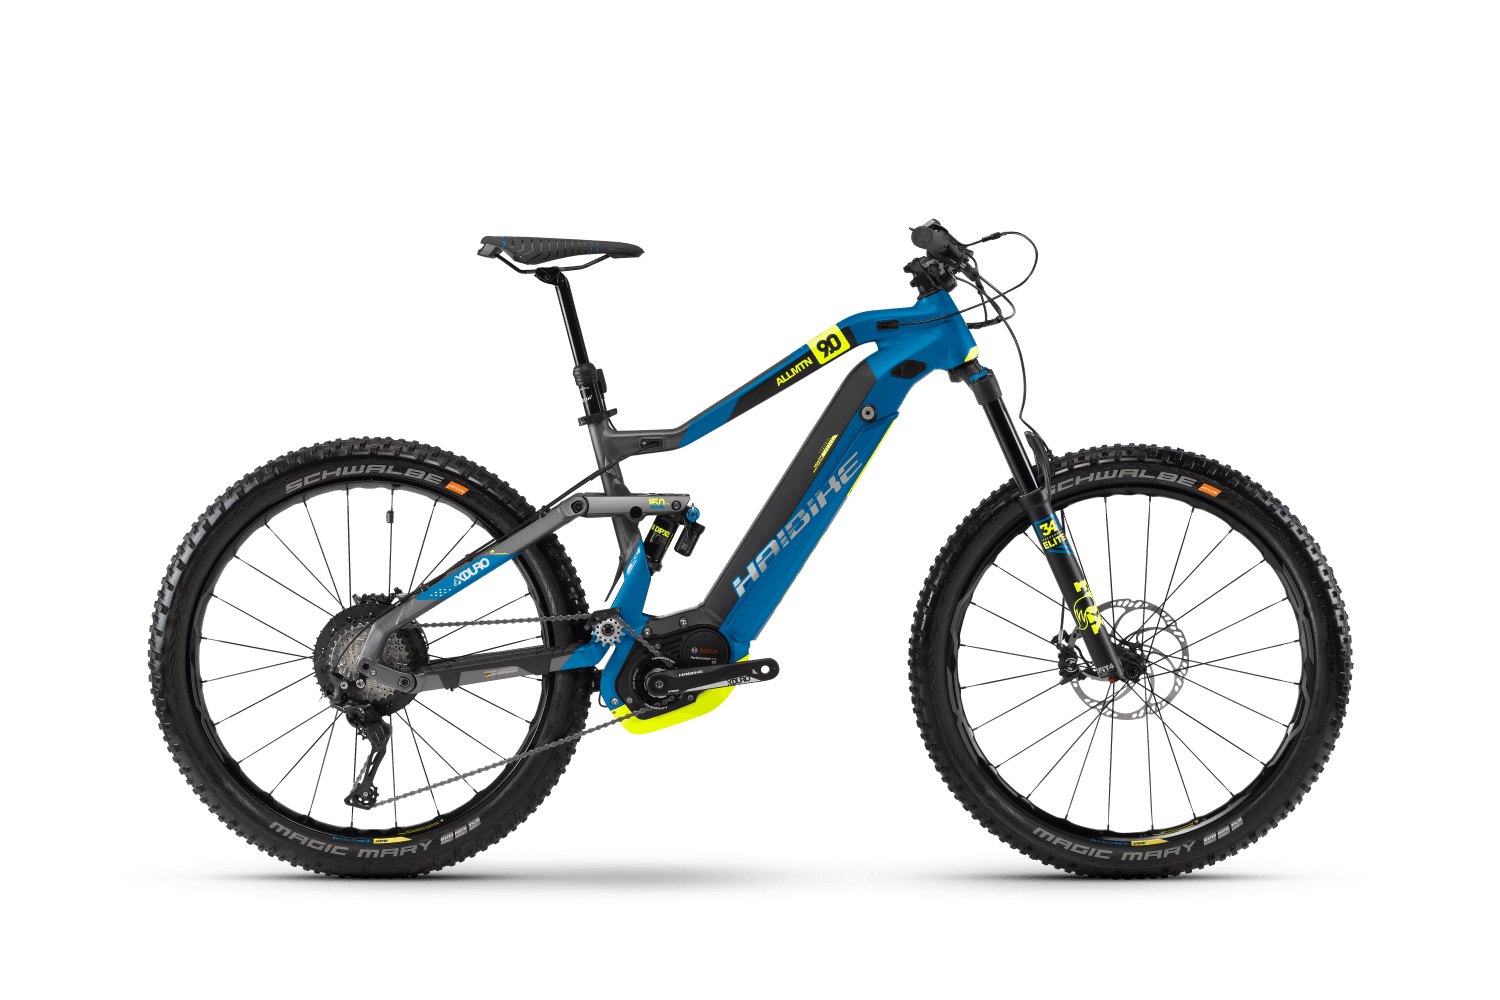 d83f0fbdc92 Haibike 2018 Xduro AllMtn 9.0 – Electric Bikes Sussex